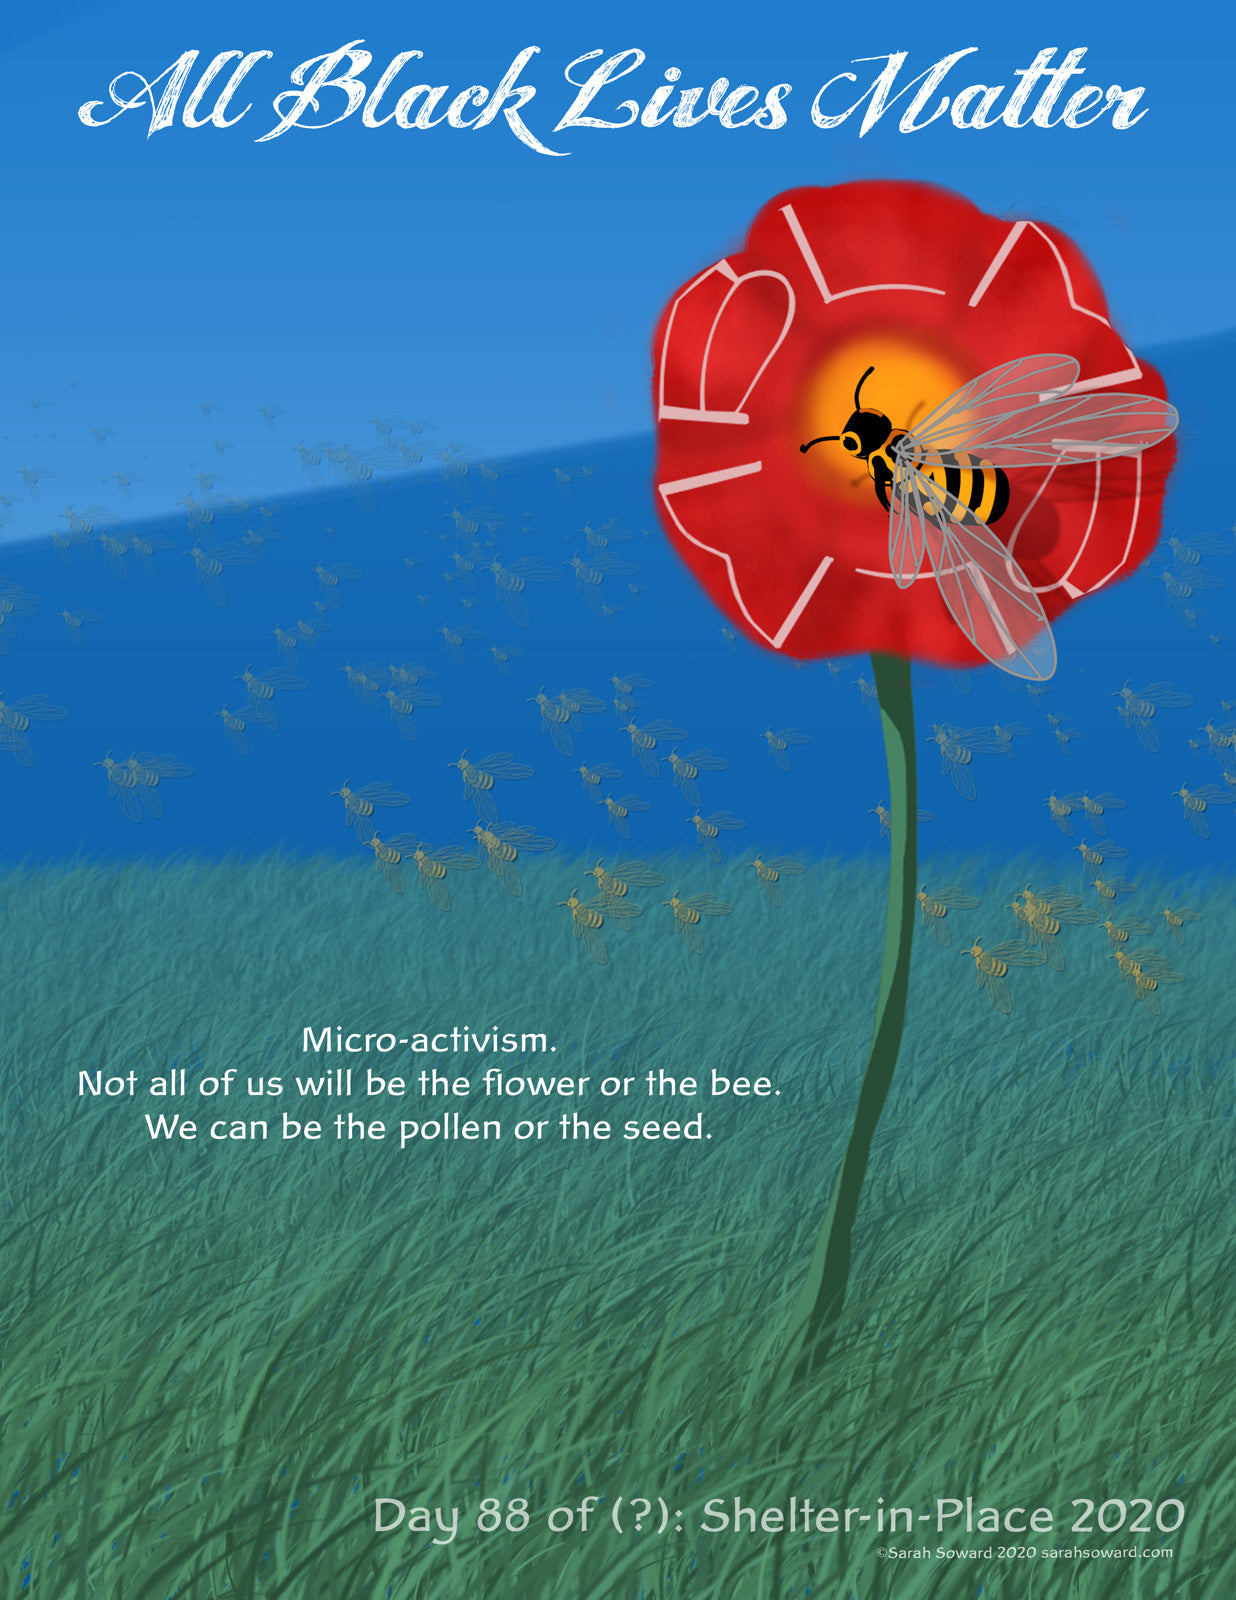 A large BLM flower is rising up from the grass. A bee with ALL spelled out in her stripes is hovering on the blossom. The text on the image reads  All Black Lives Matter Micro-activism.  Not all of us will be the flower or the bee.  We can be the pollen or the seed.